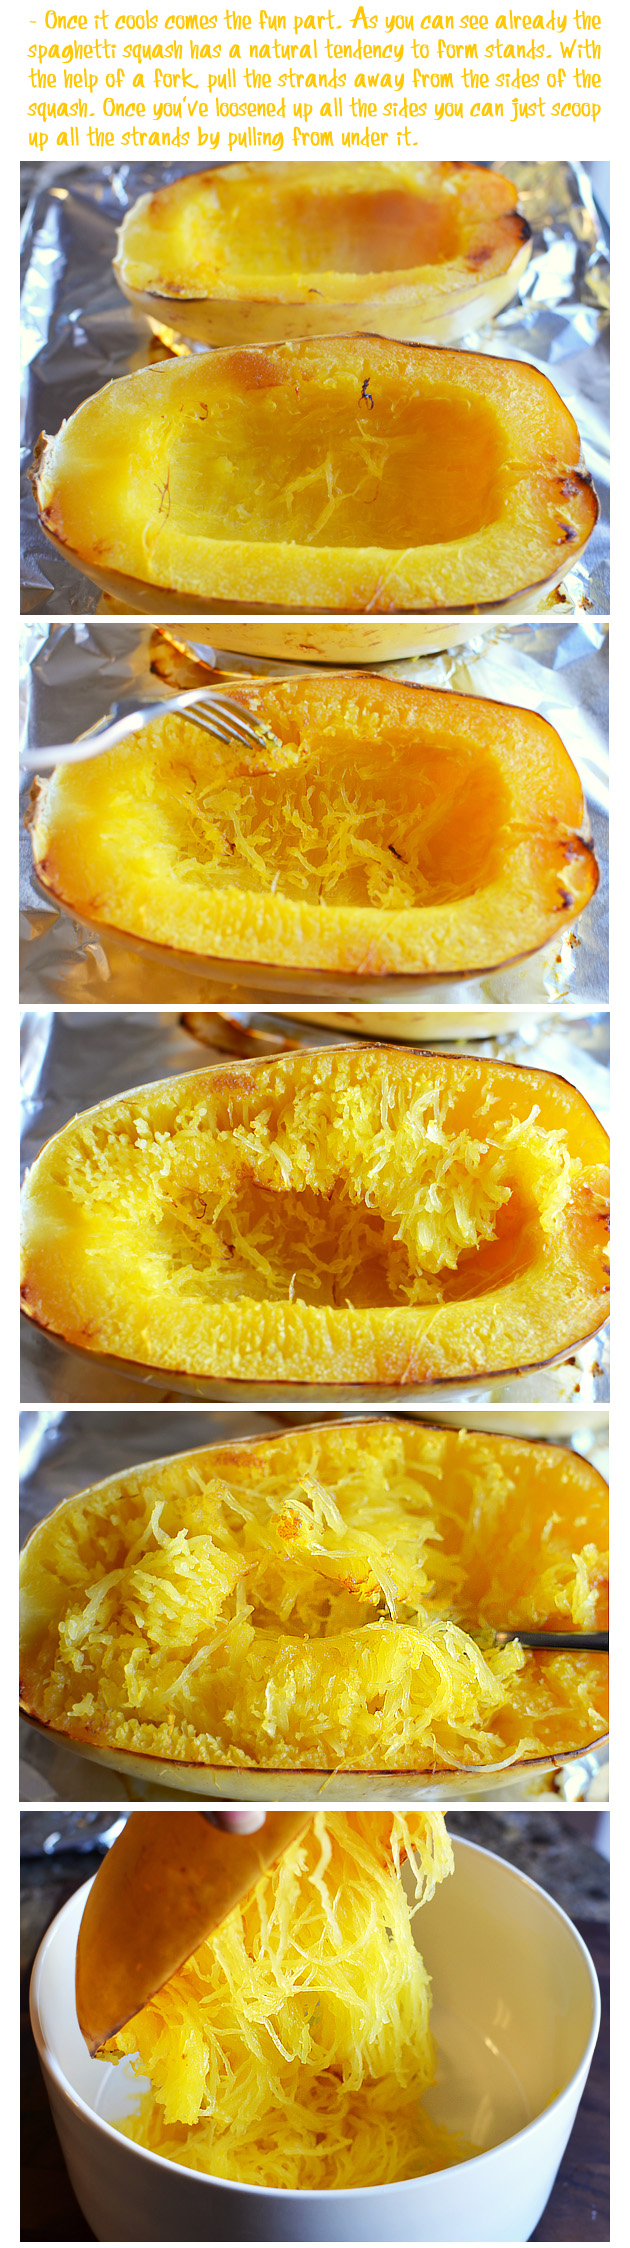 Cooking Spaghetti Squash Picture The Recipe